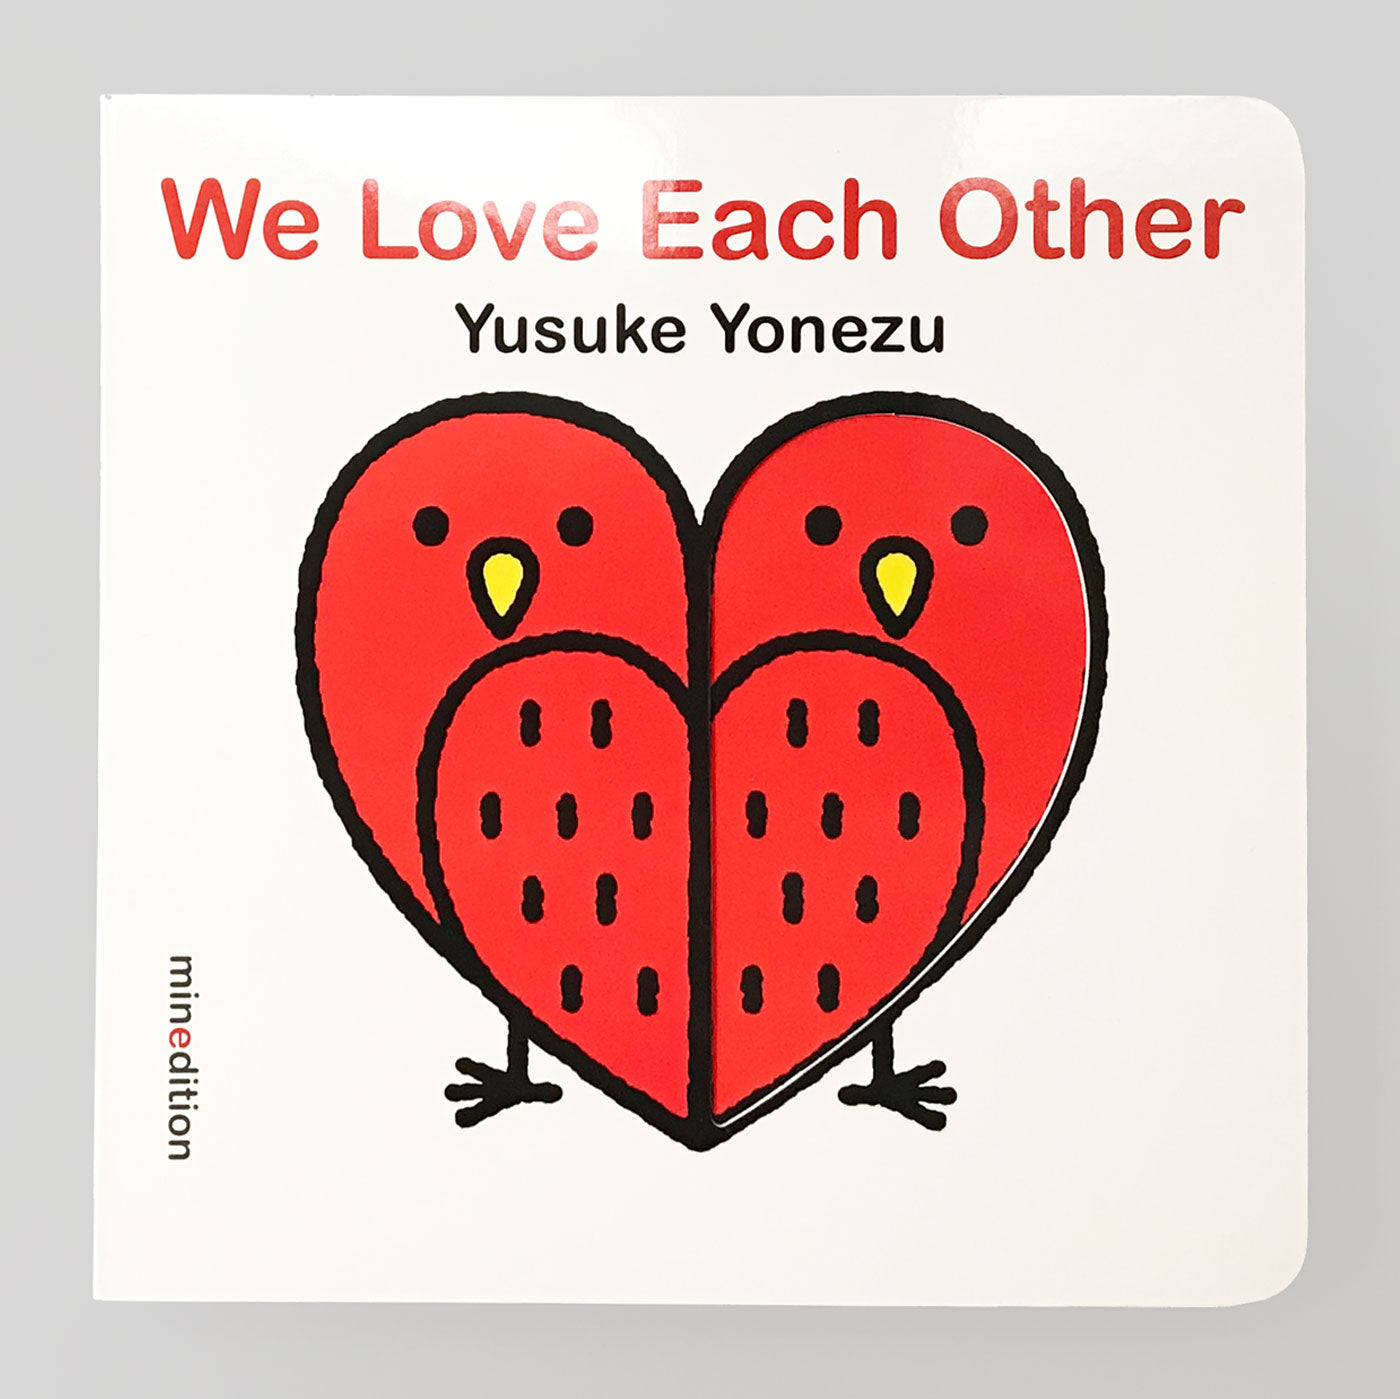 We Love Each Other by Yusuke Yonezu - Colours May Vary